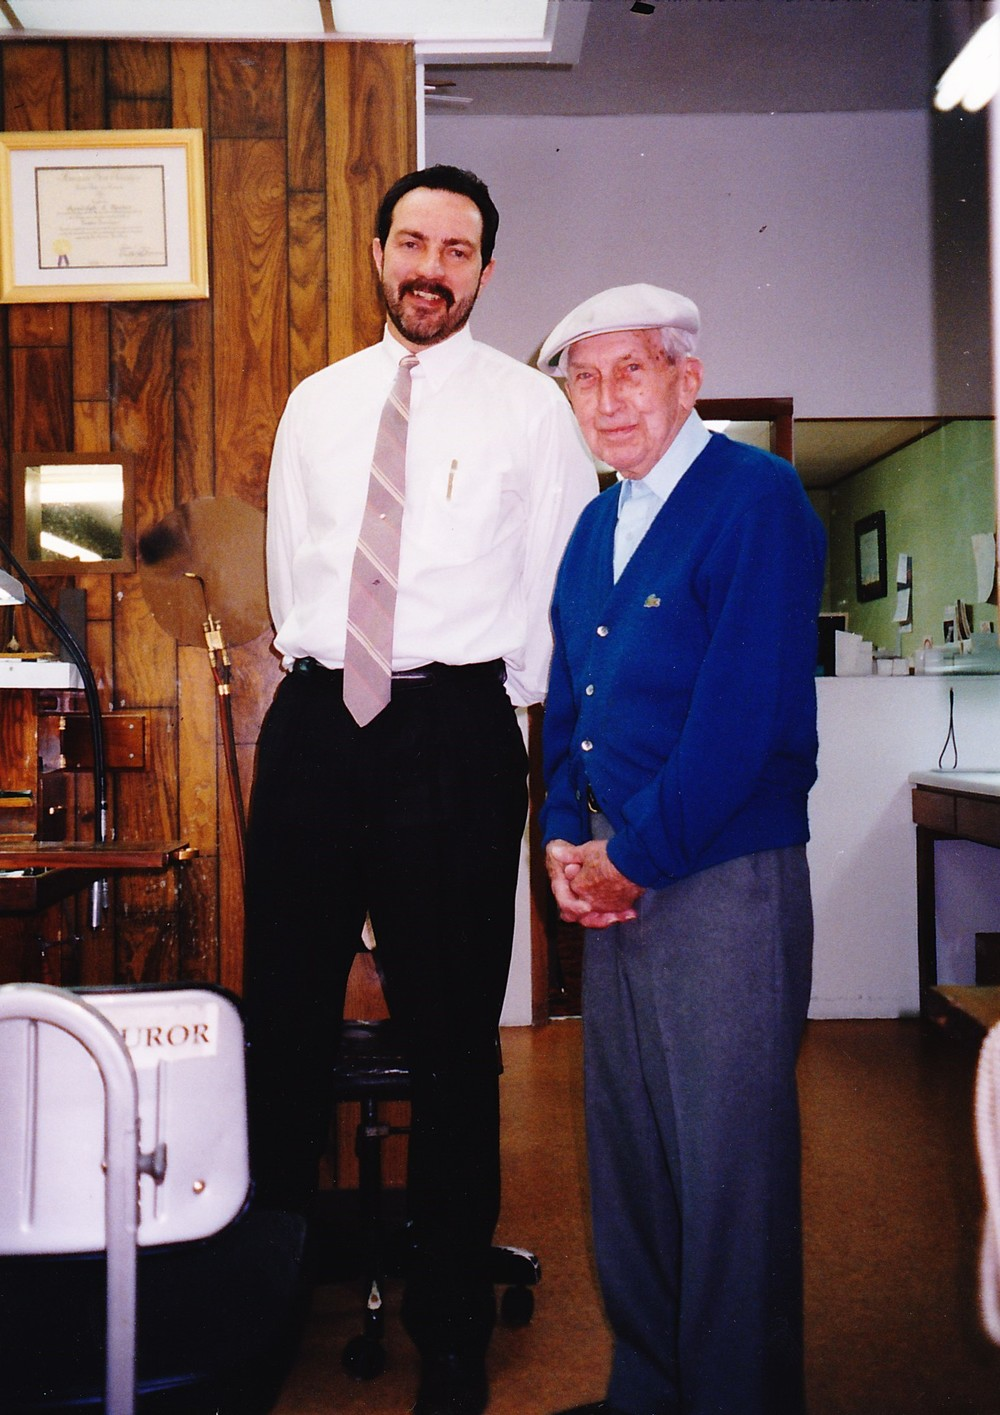 Current owner Randy Reider with original owner Cloyd Garwood in the early 2000s.